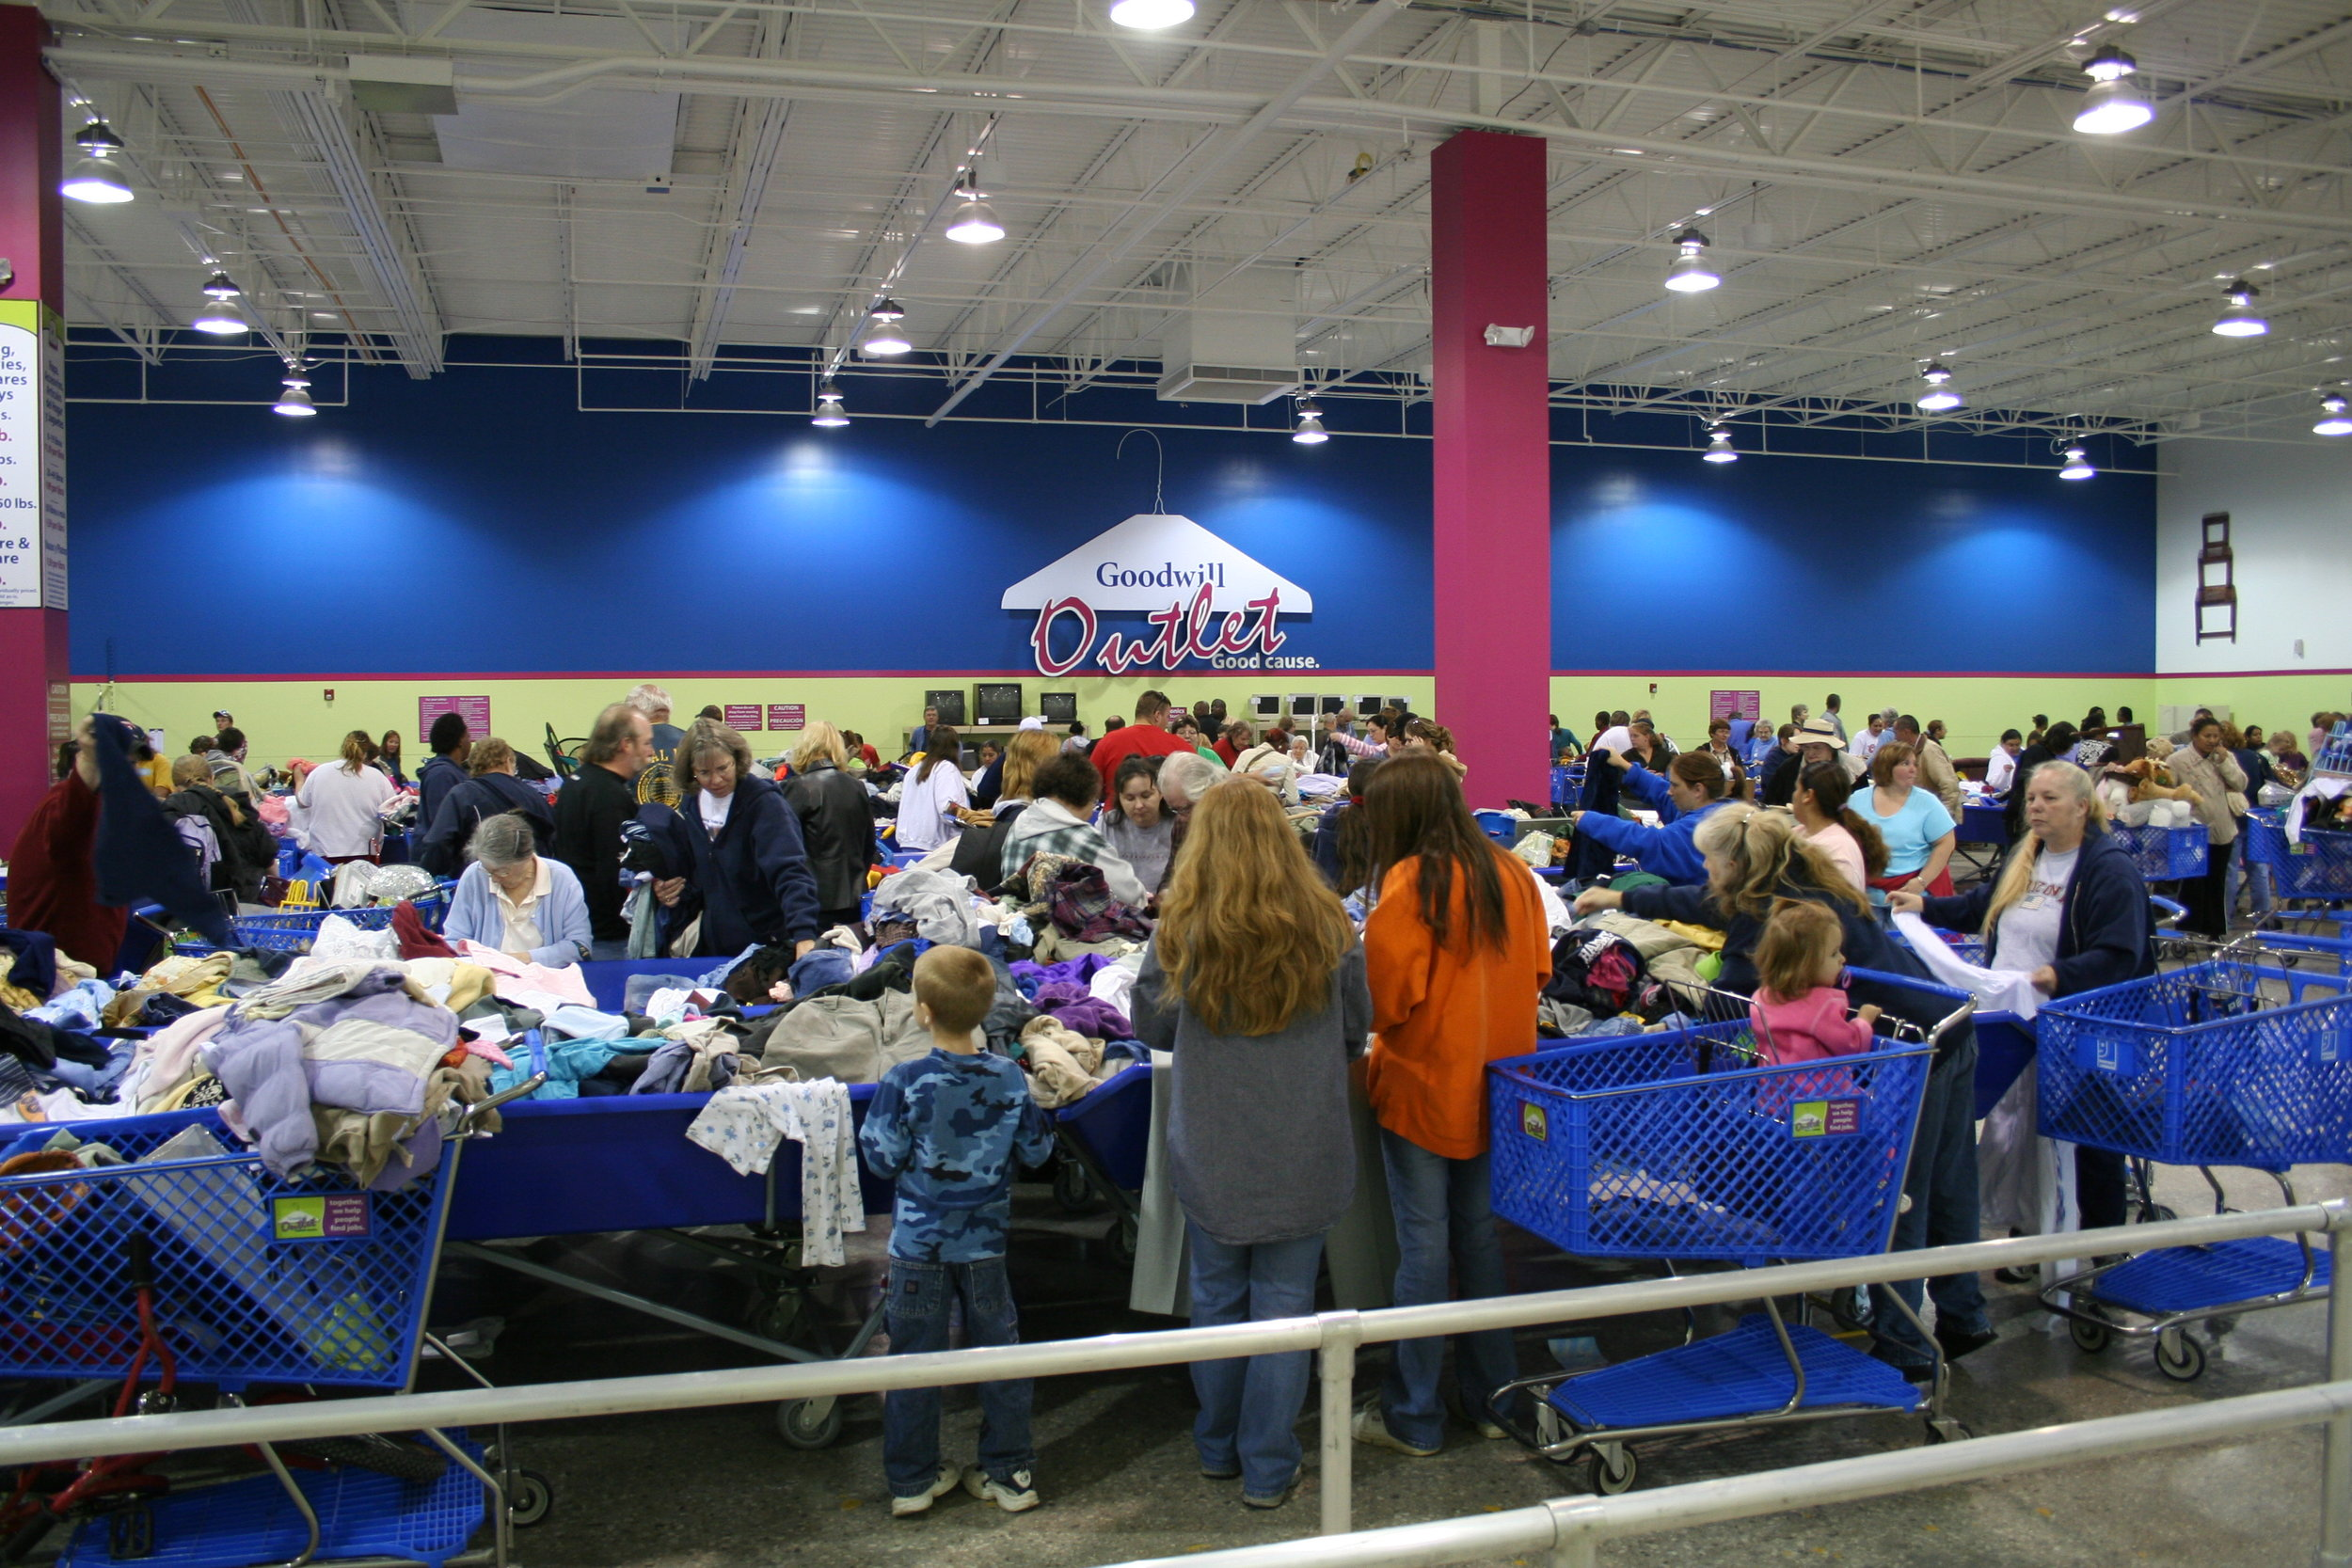 Goodwill - Changing communities. One donation at a time.